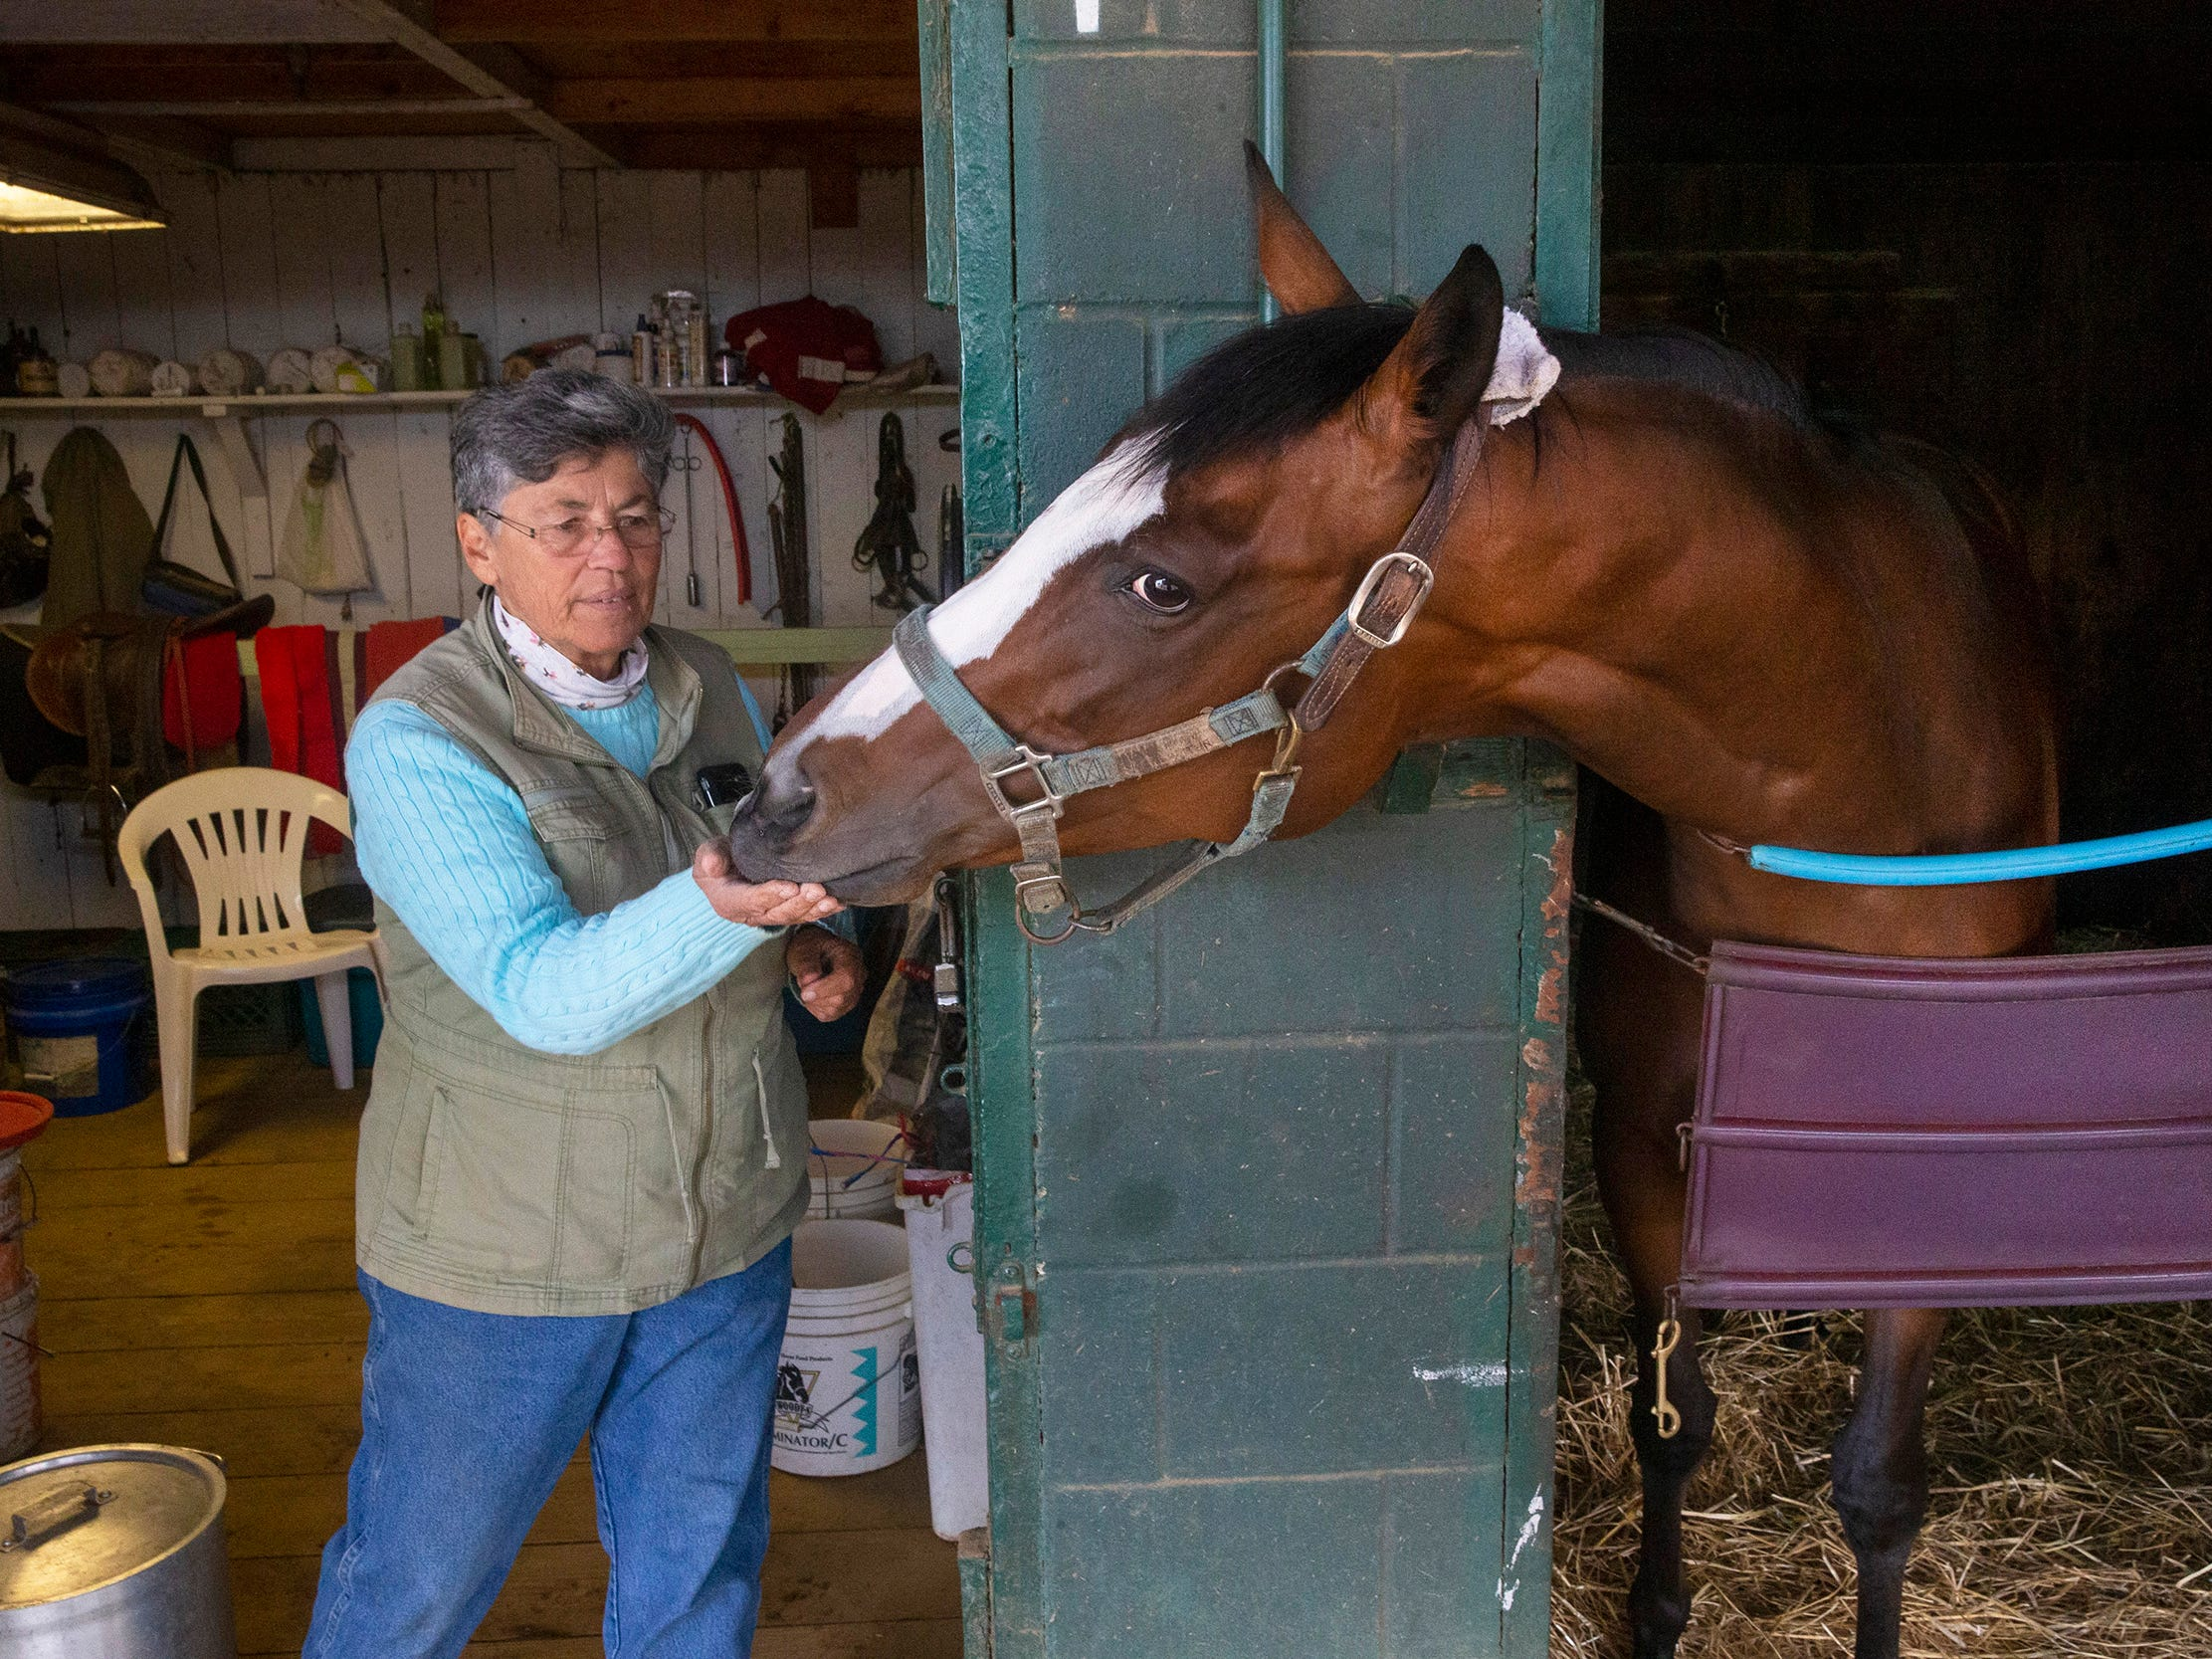 Berri Kromann of Monroe gives a treat to her horse Mad Hatter. Monmouth Park backstretch comes to life as trainers and horses arrive in preperation for the May 4 opening day.